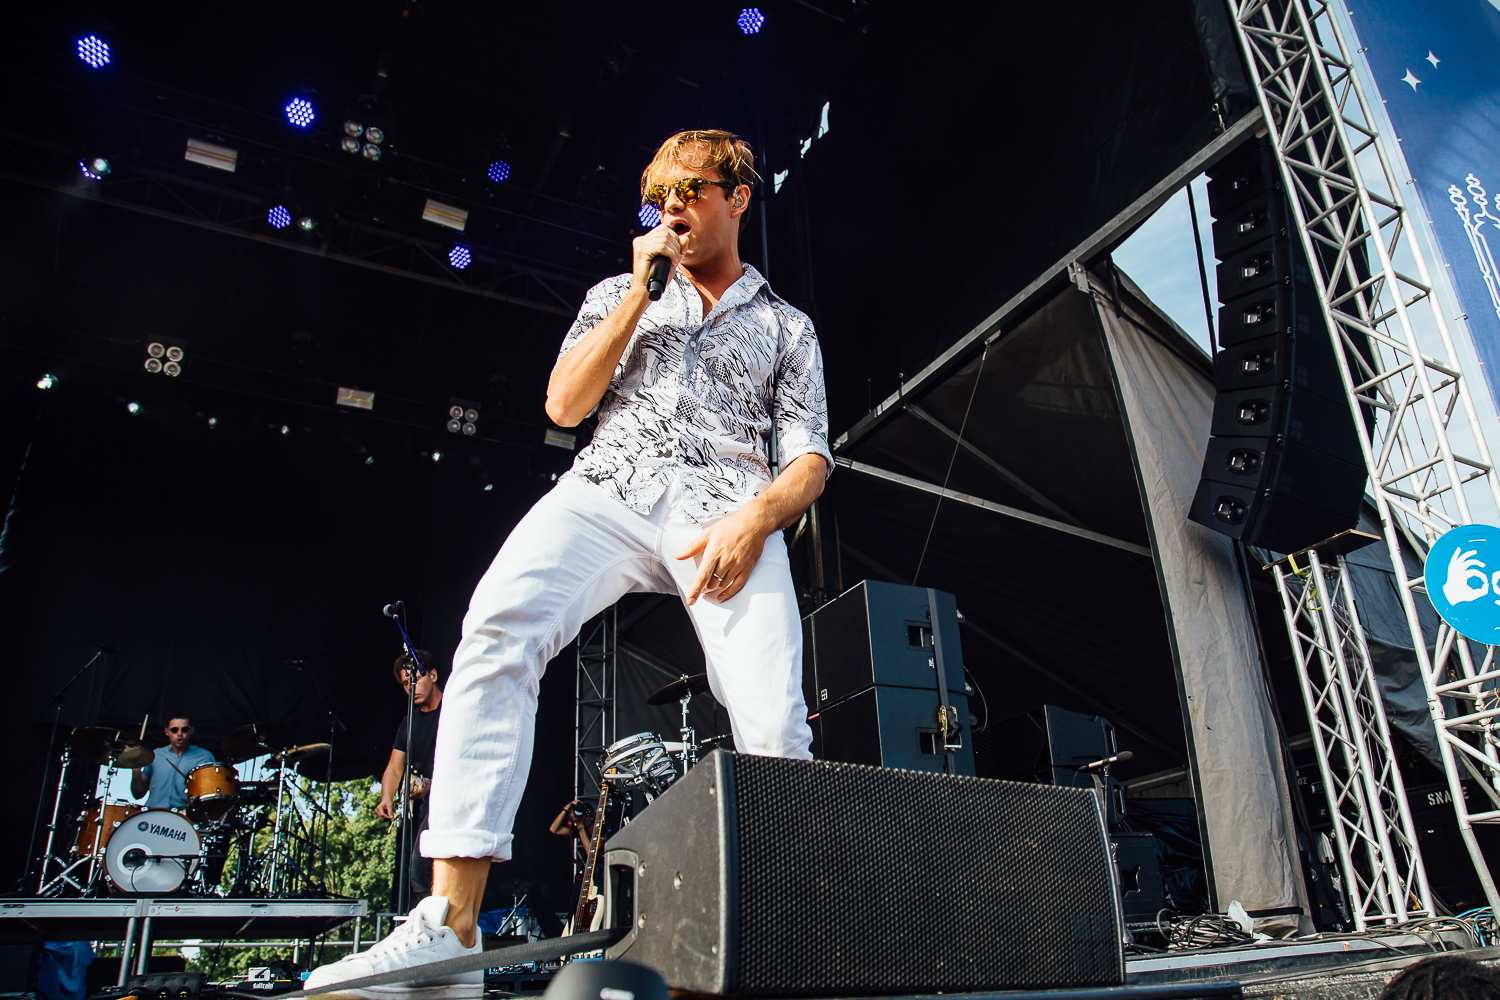 St. Lucia - 3 - Loufest - Pitch.jpg